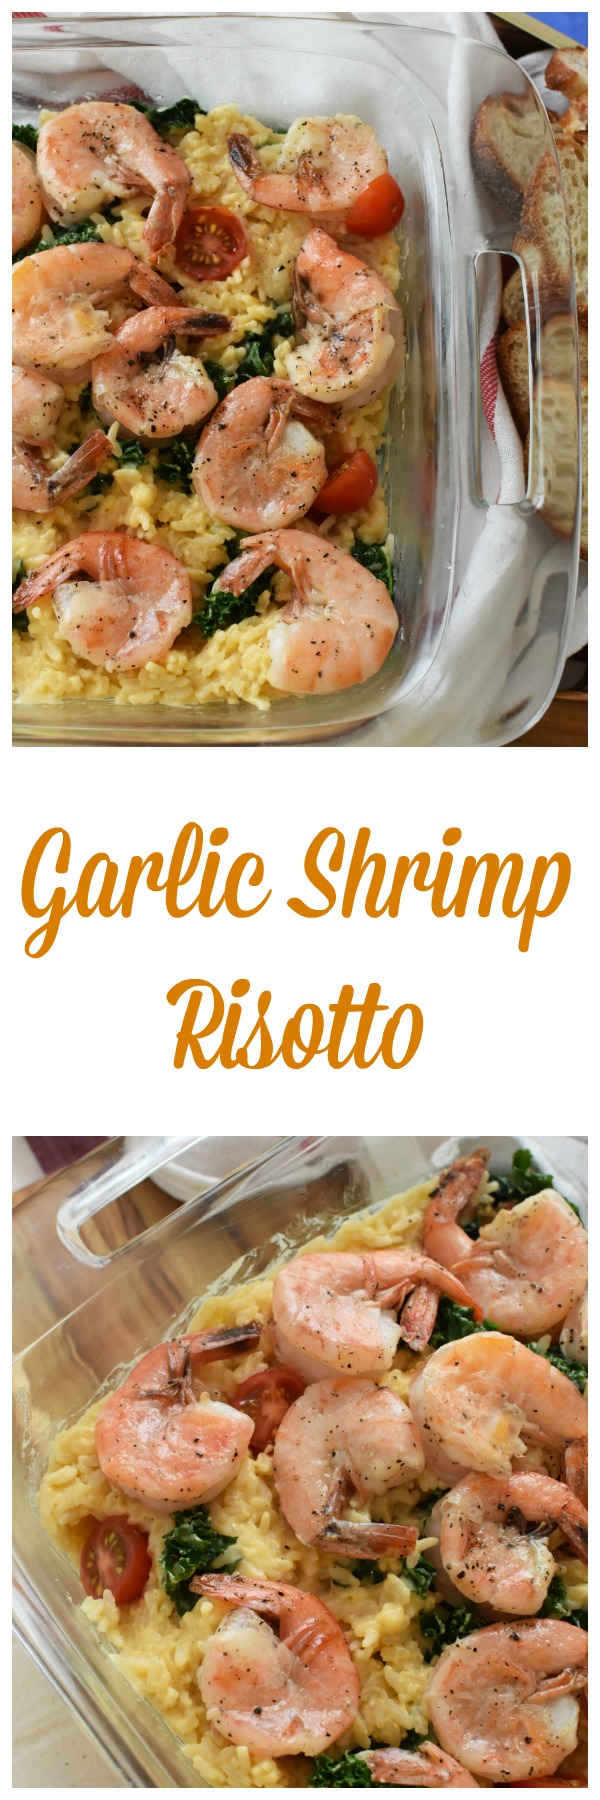 Garlic Shrimp Risotto- An easy way to prepare a gourmet meal. This cheesy risotto features kale, cherry tomatoes, and pan-fried garlic shrimp.